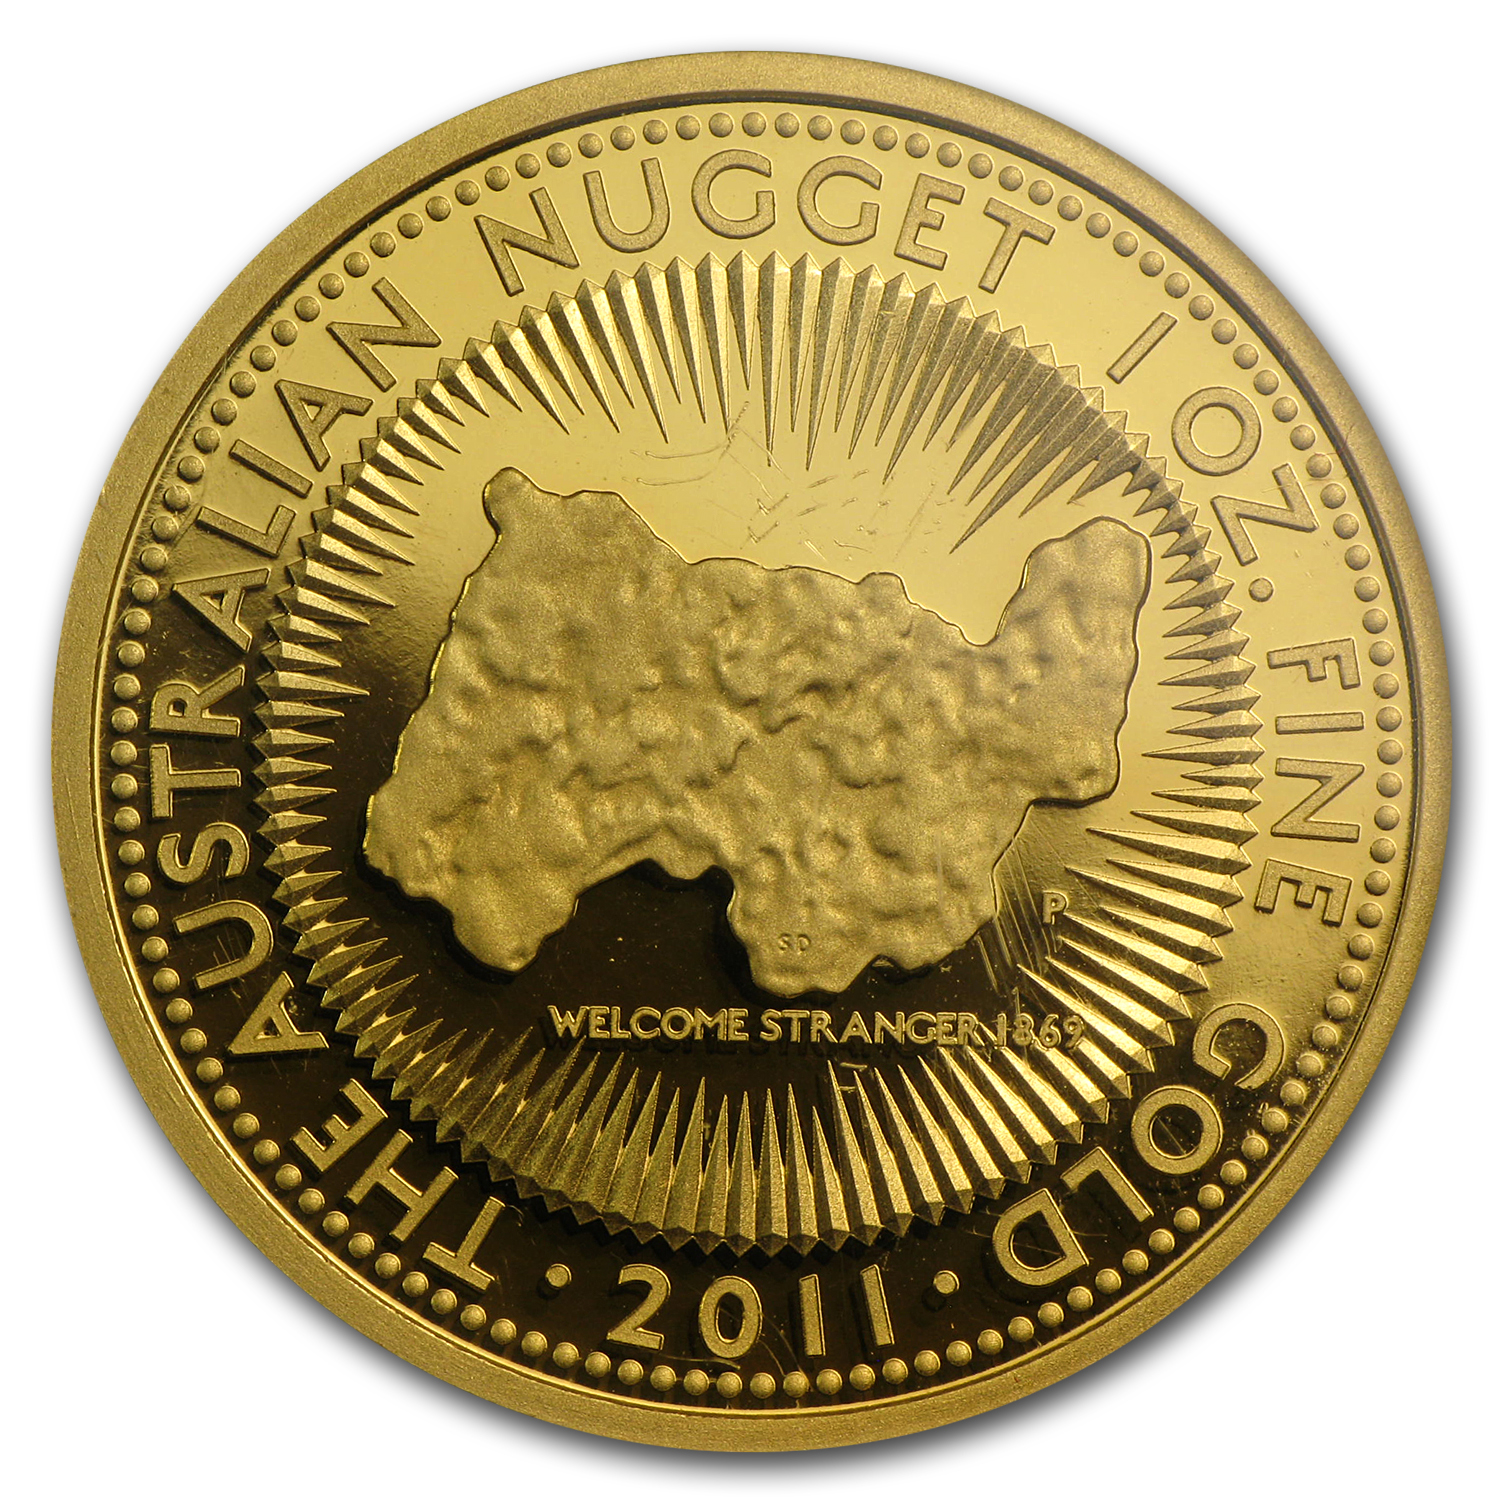 2011 1oz Australian Proof Gold Nugget 25th Anniv. PCGS PR-69 (FS)